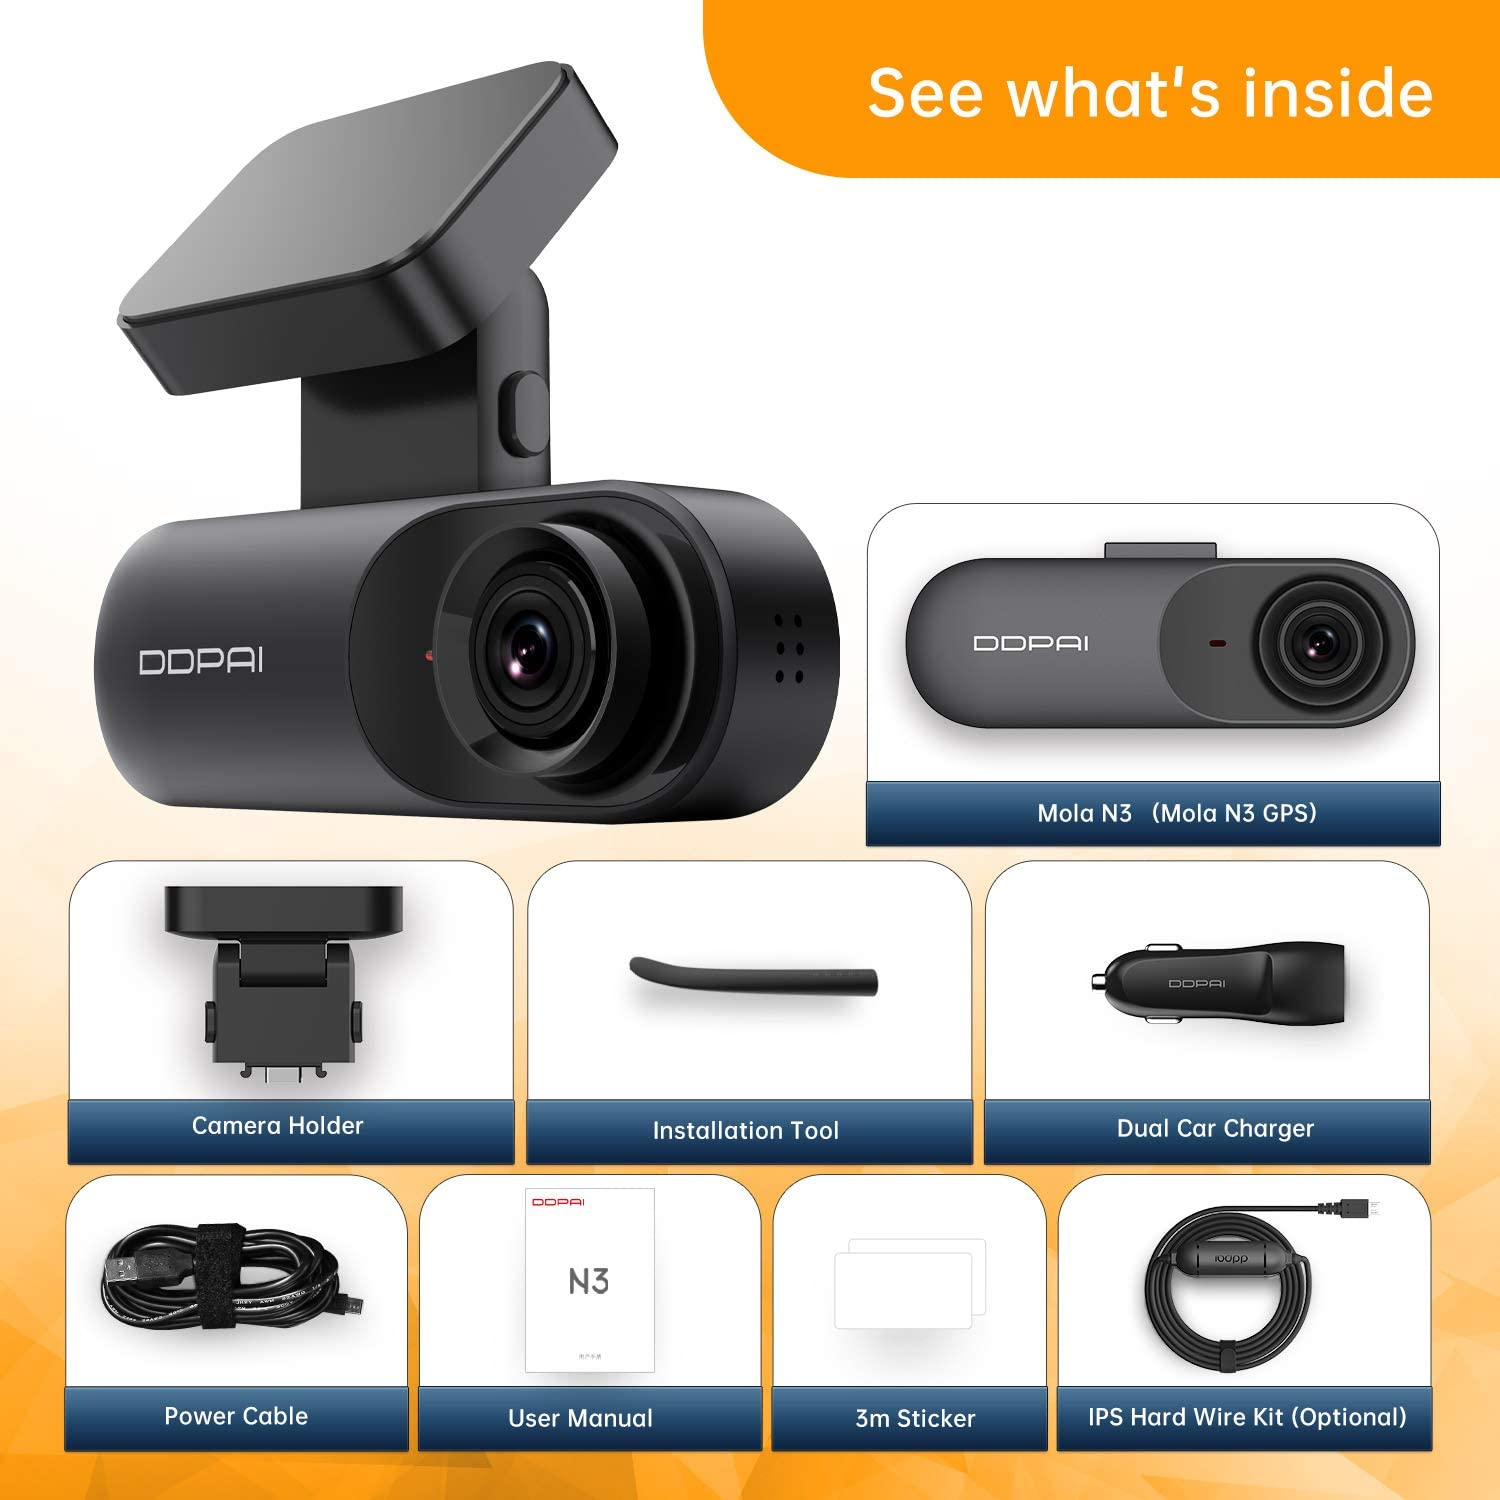 1600P Front Dash Cam DDPAI Mola N3 Dash Cam 2K Dash Cam Recorder Single Front Dashboard Camera for Car| Infrared Night Vision |24hr Motion Sensor Parking Mode App /& Wi-Fi| Support 128GB max